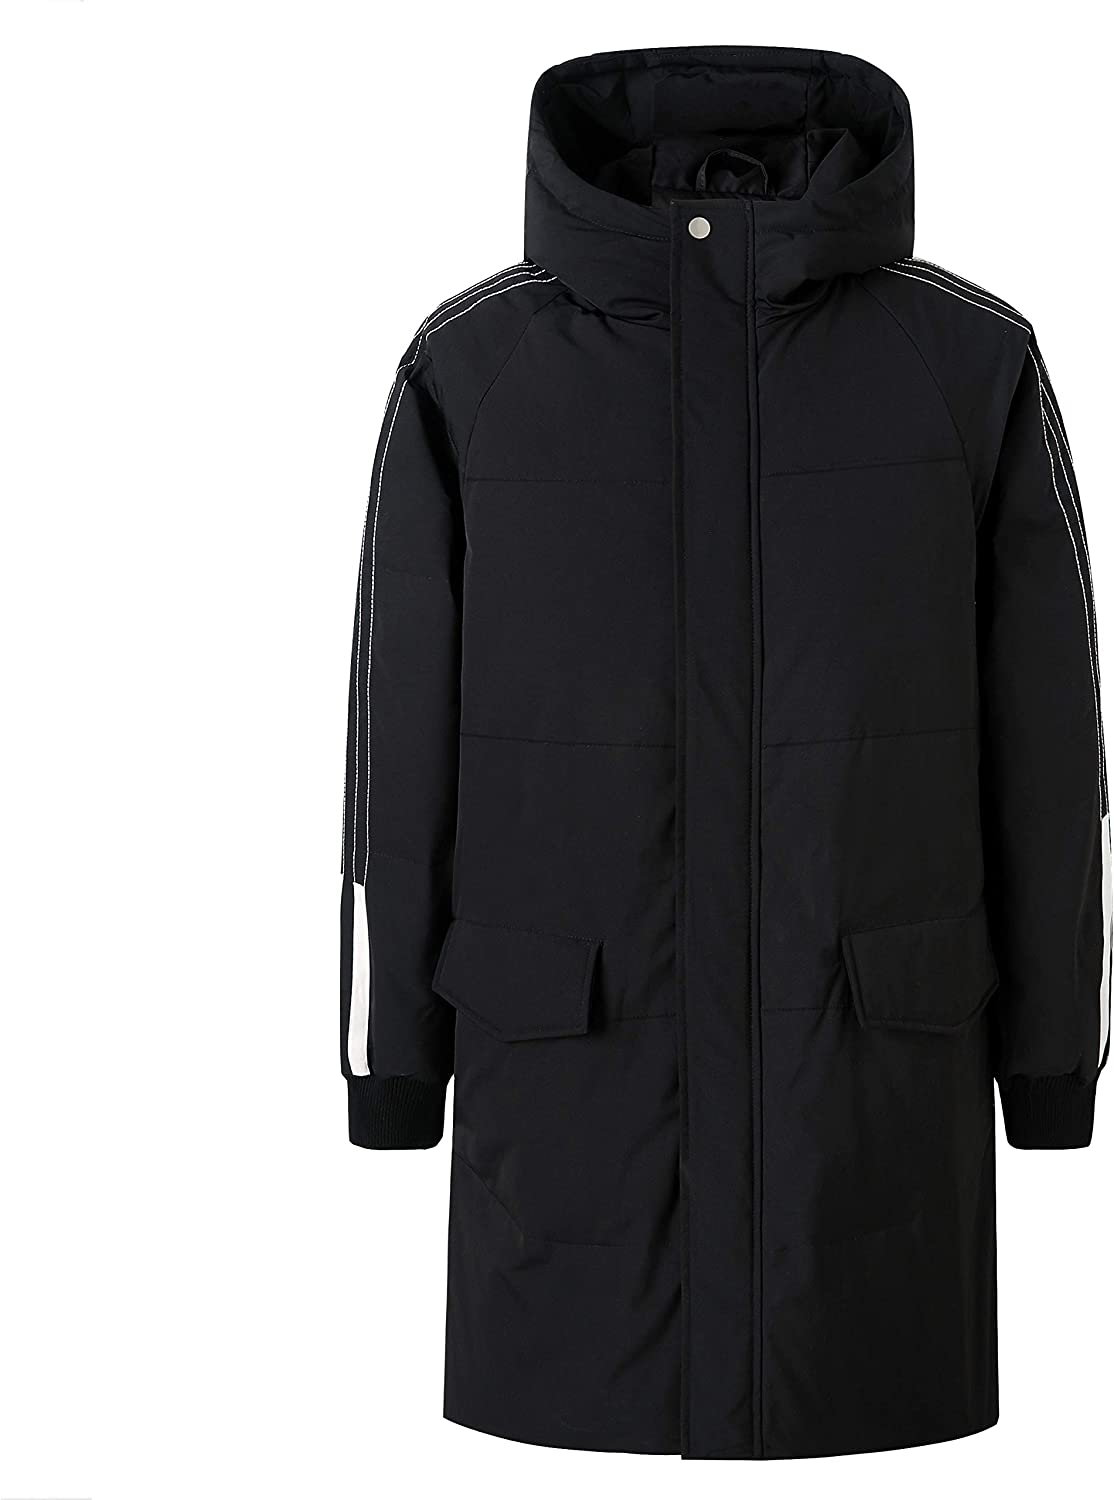 ZENTHACE Men's Long Down Coat Winter Warm Down Puffer Jacket with Hood(Big and Tall)